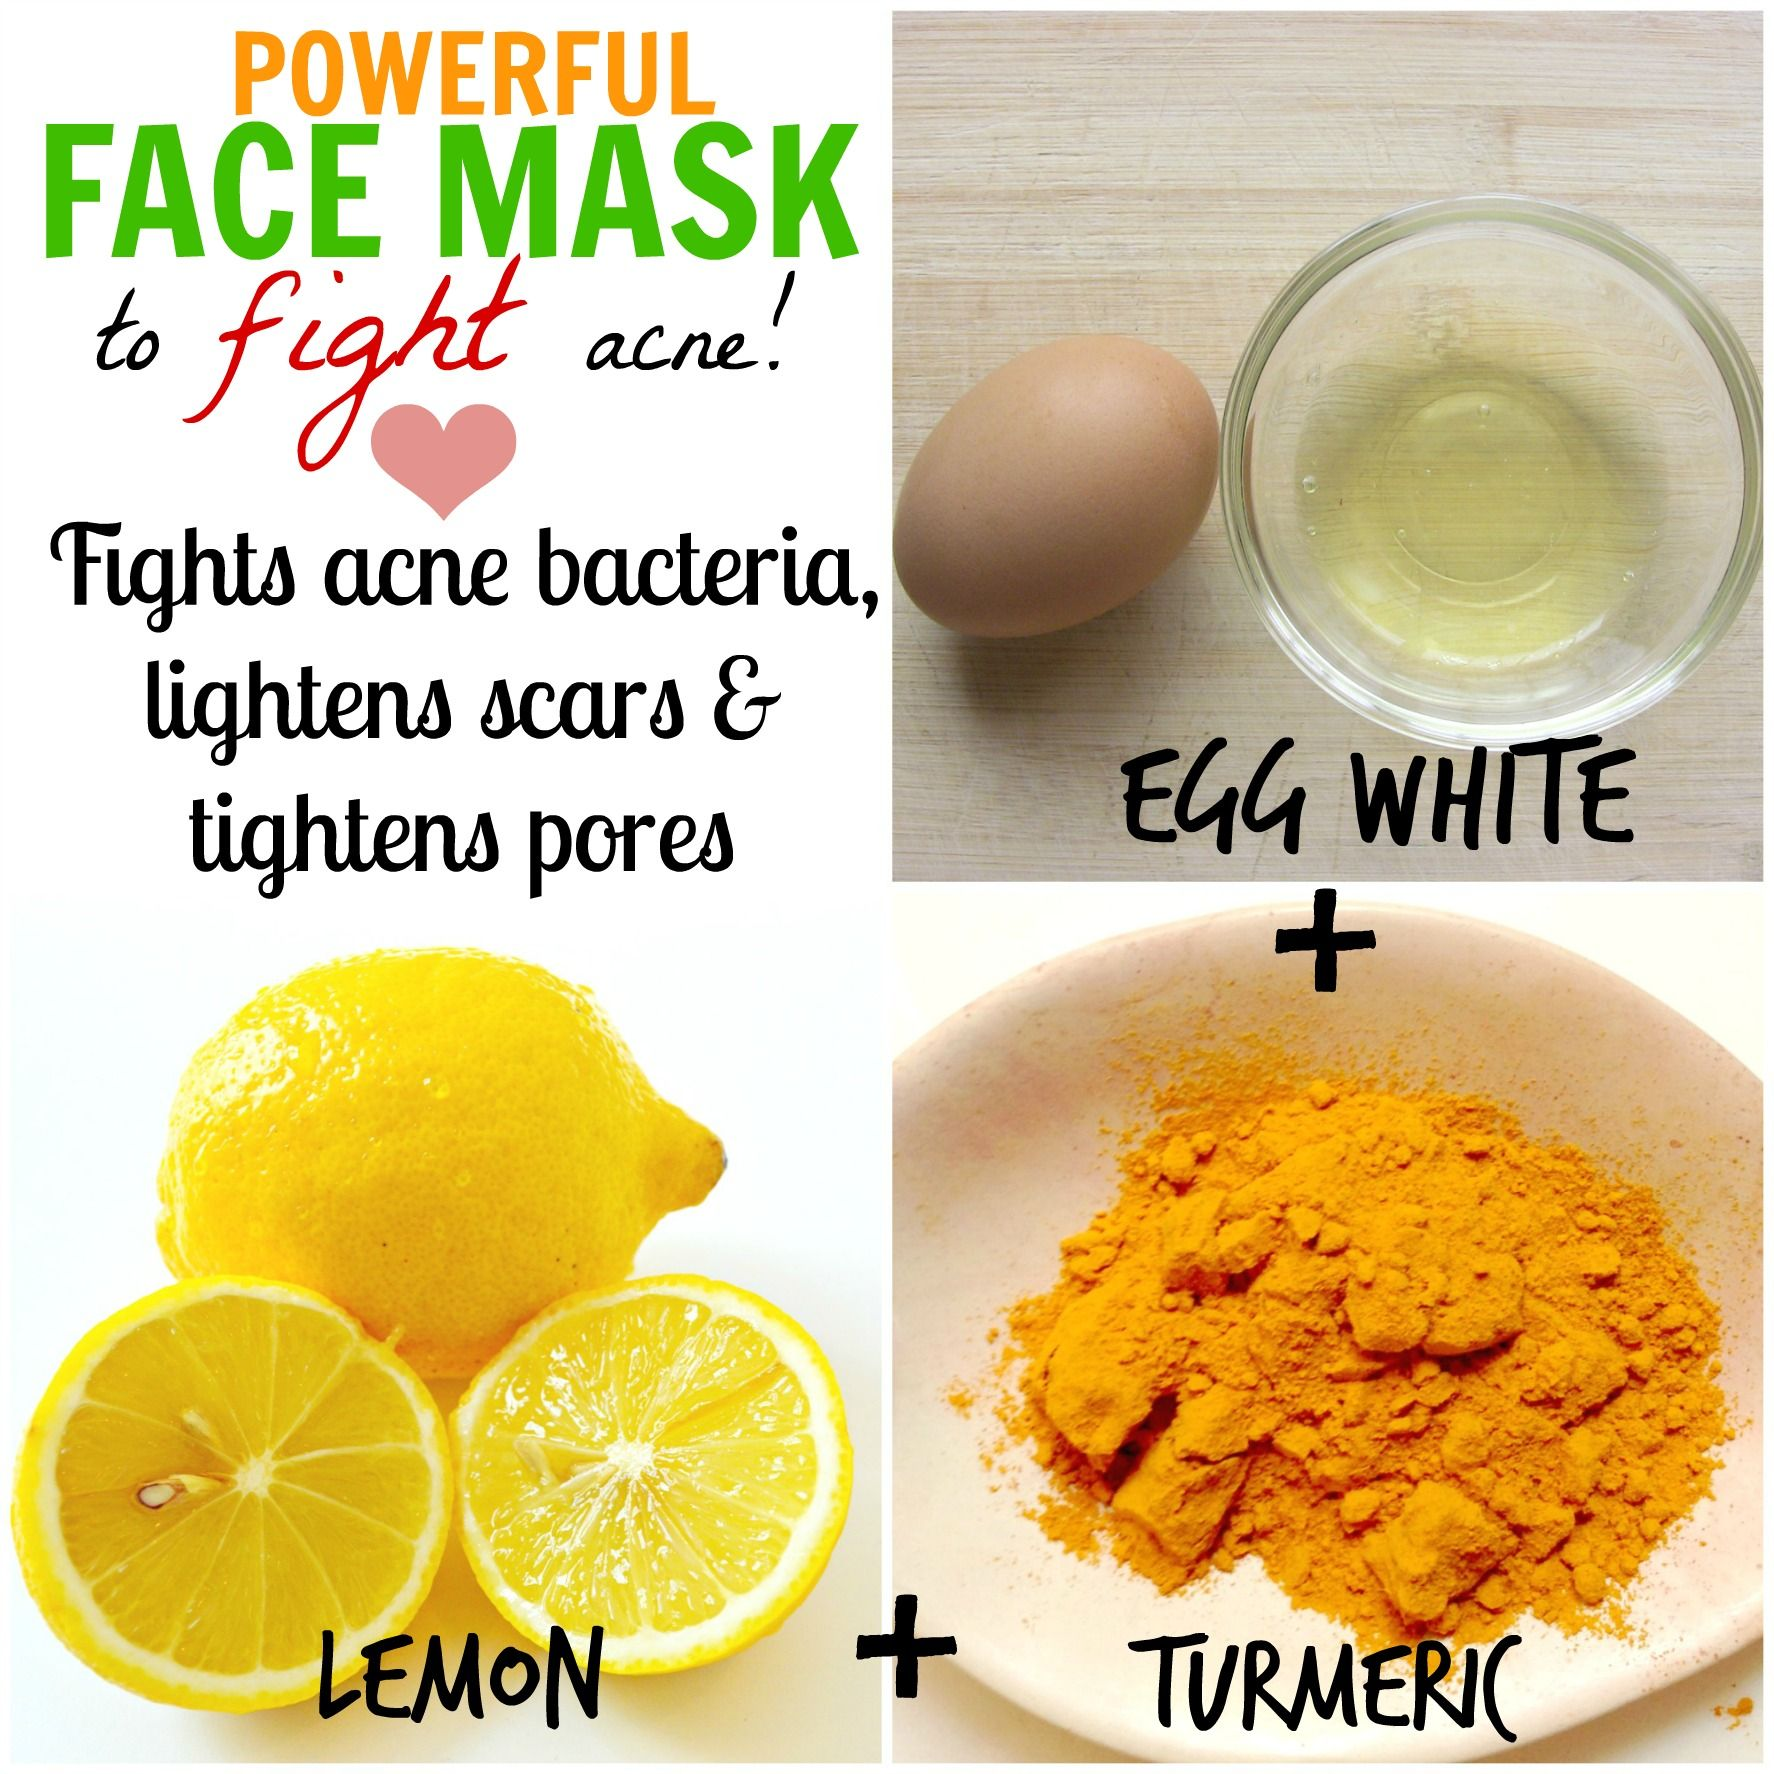 diy natural homemade face masks for acne cure | diy i'll never do